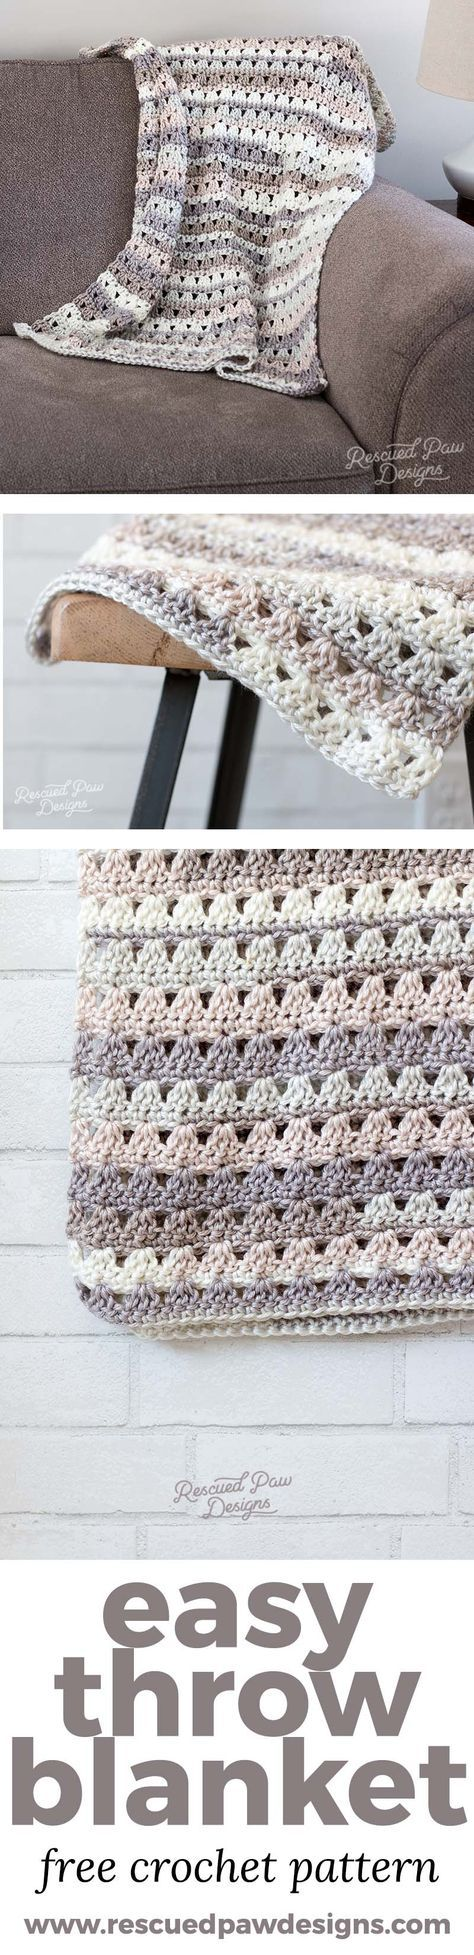 191 best Crochet ~ Afghans images on Pinterest | Knitted afghans ...